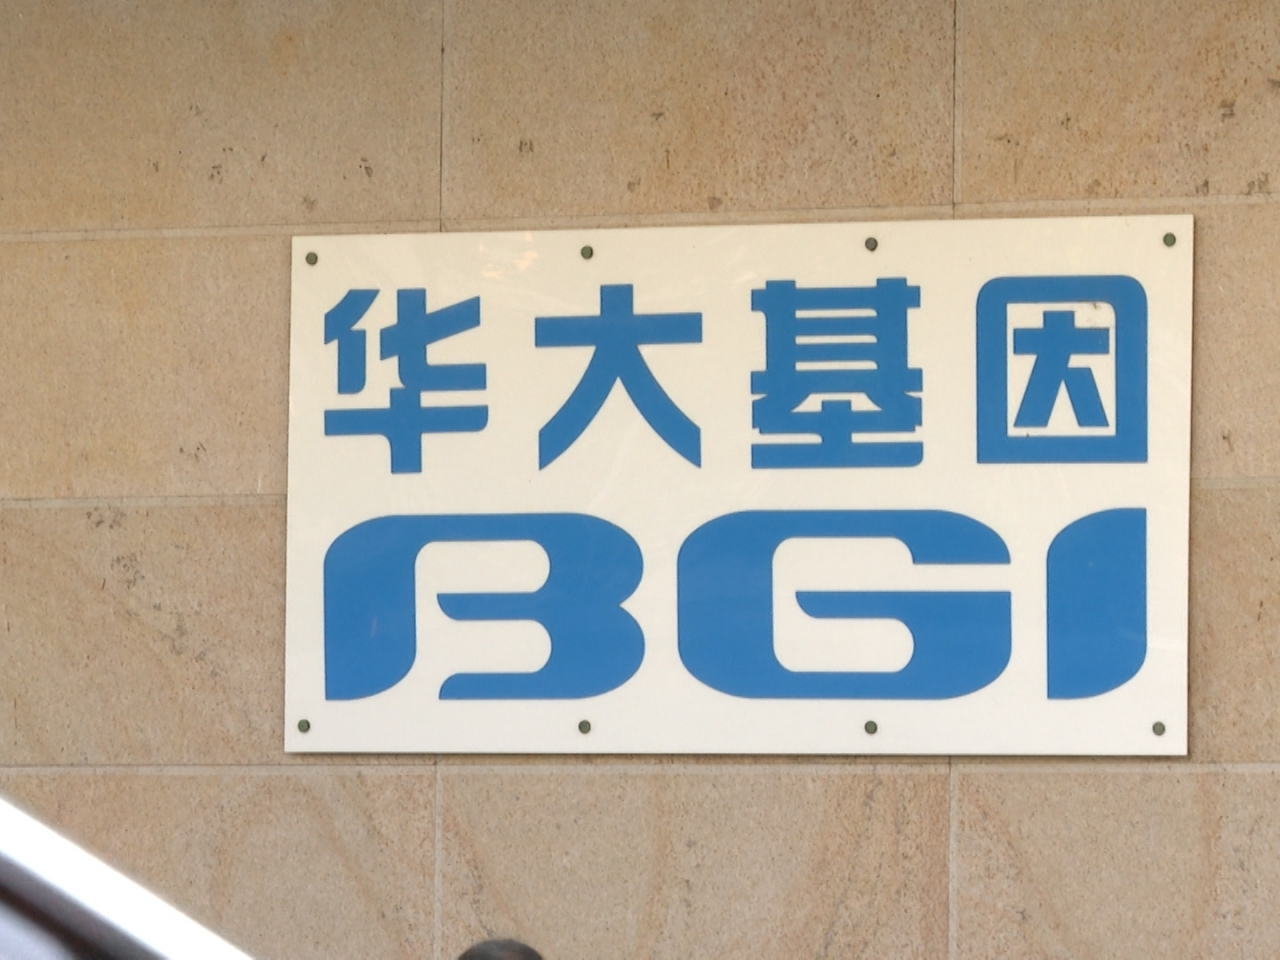 Both BGI and the government have apologised for the latest blunder. File photo: RTHK